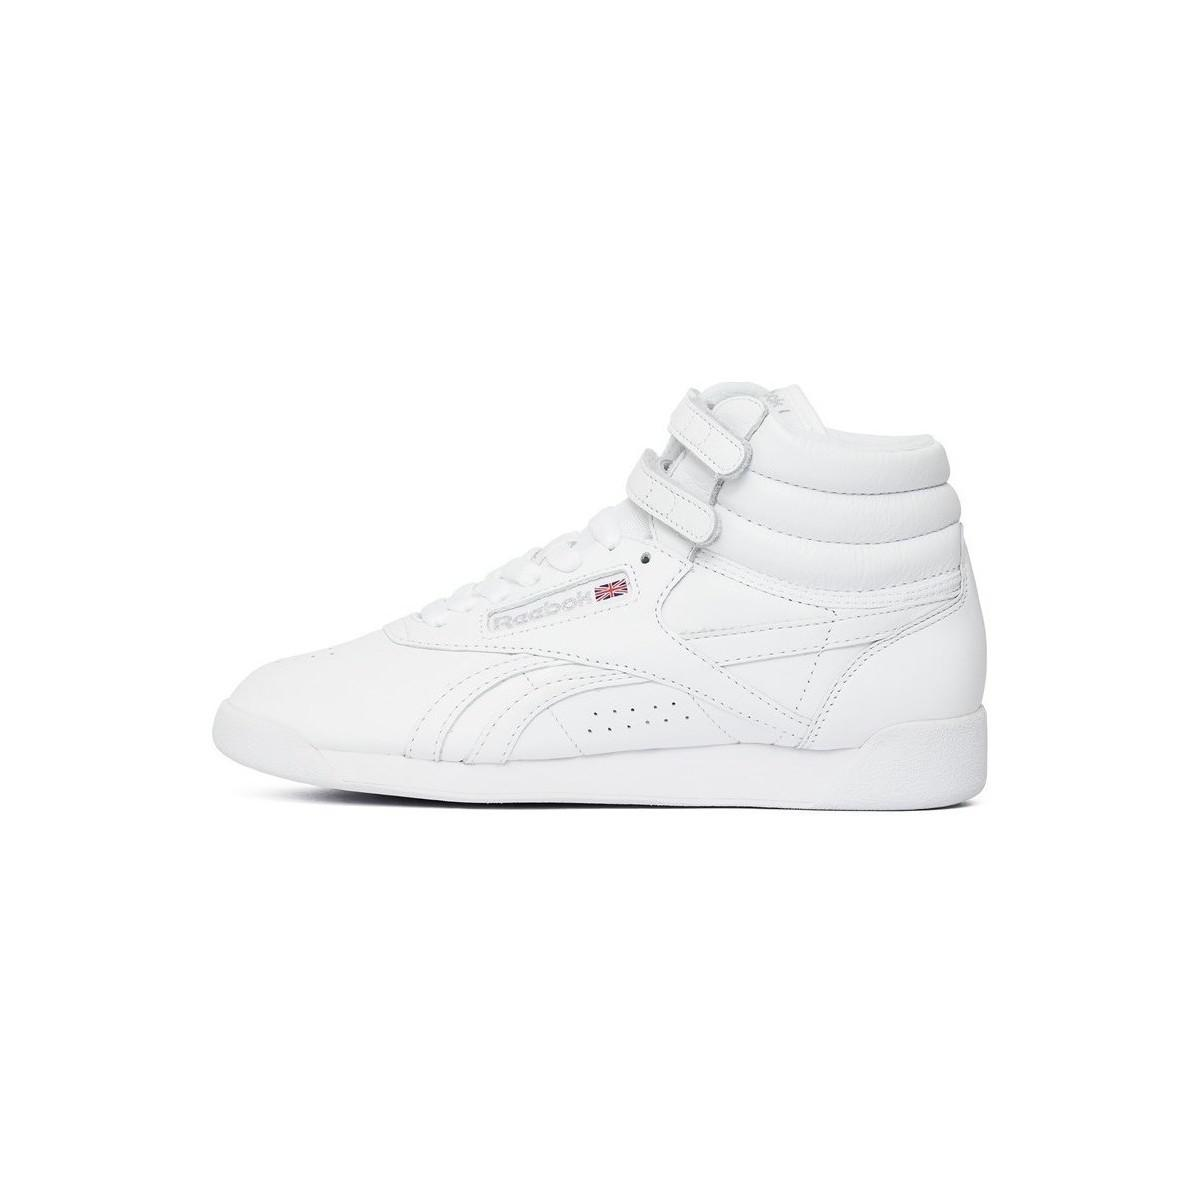 e871e0a6f98c5 Reebok Freestyle Hi Og Lux 35th Anniversary Women s Shoes (high-top ...